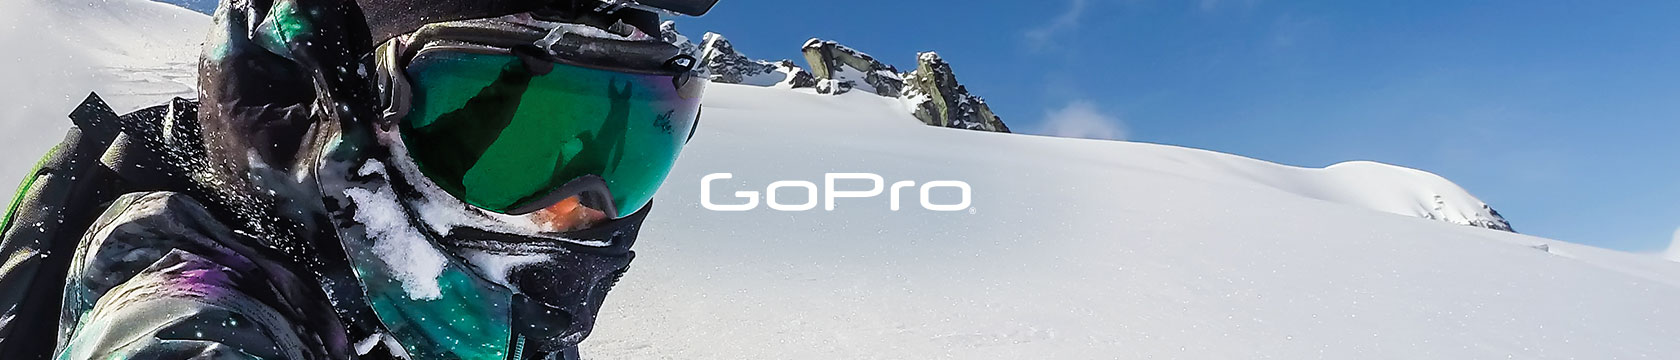 Skier wearing GoPro on a mountain pieste.